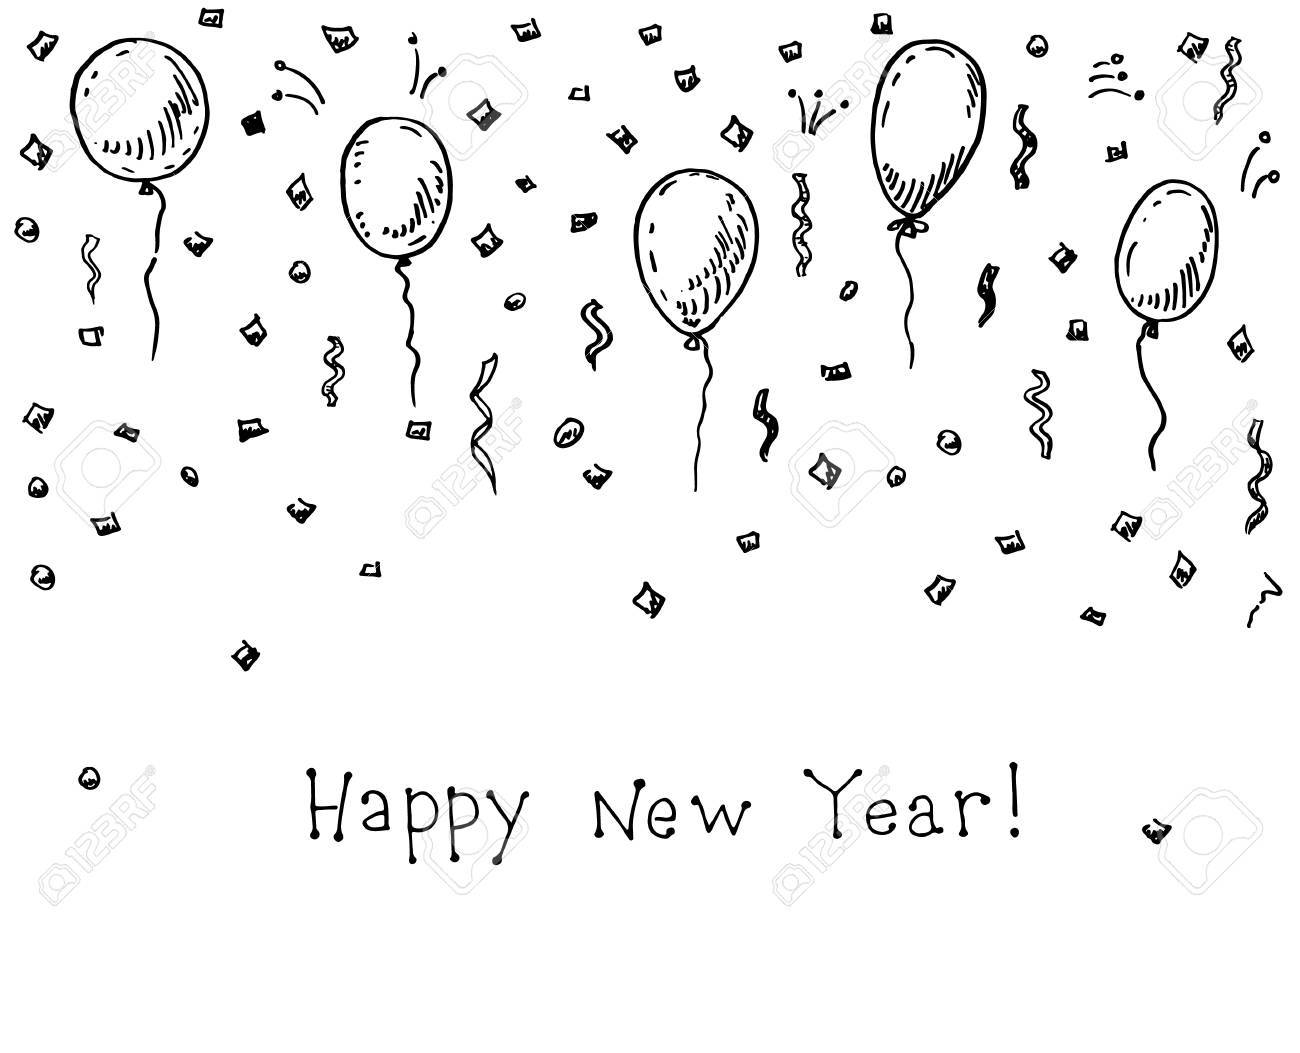 Happy New Year Doodle 7